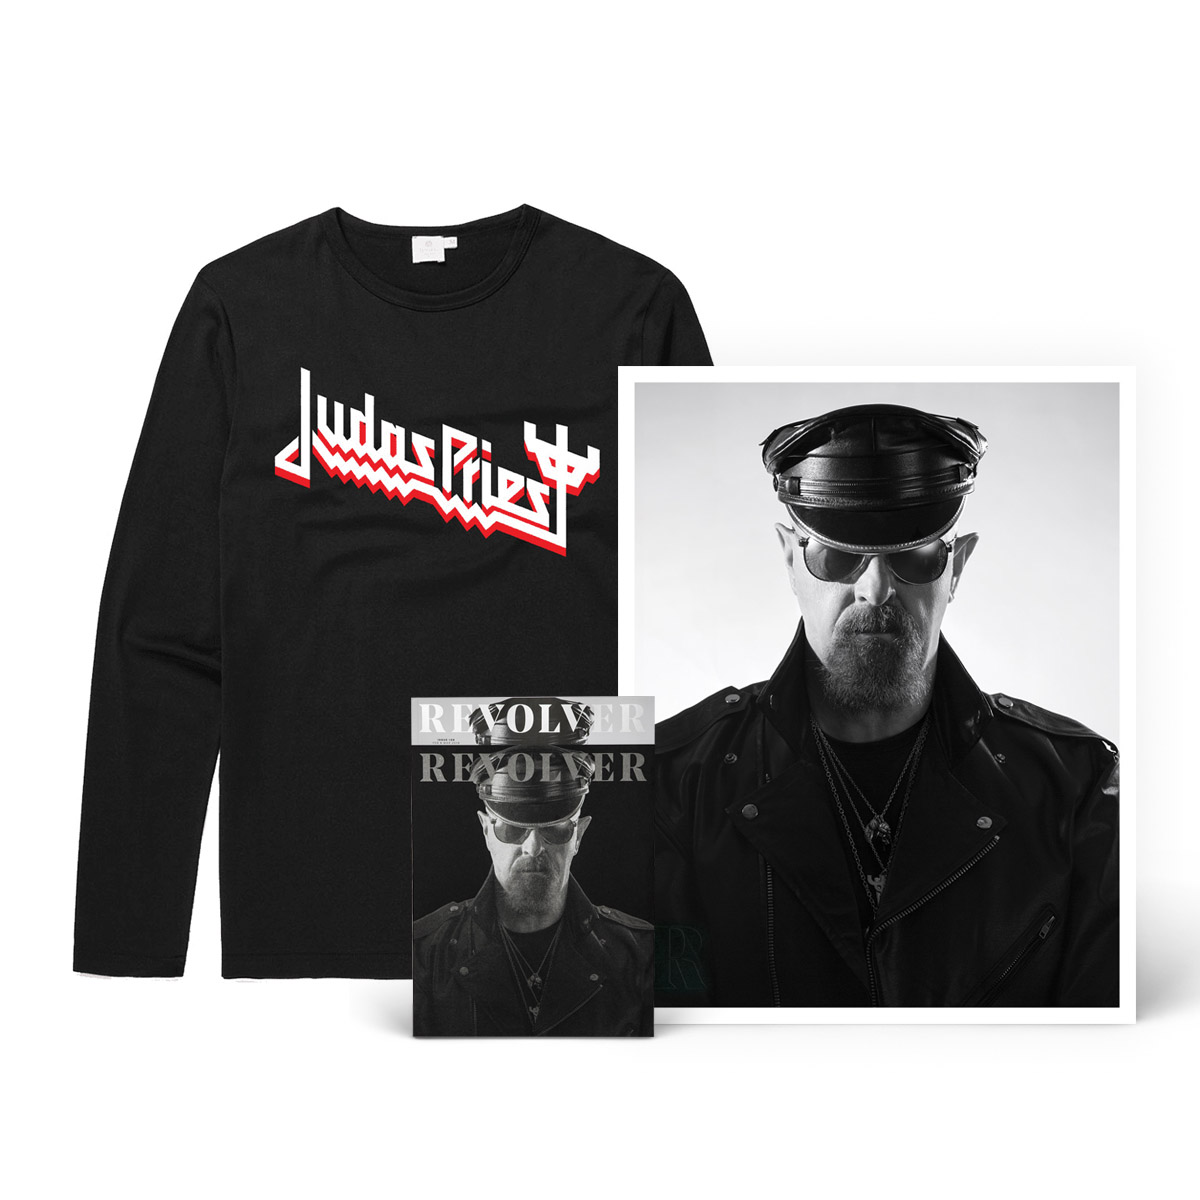 Judas Priest Collector's Bundle - Only 50 Available!